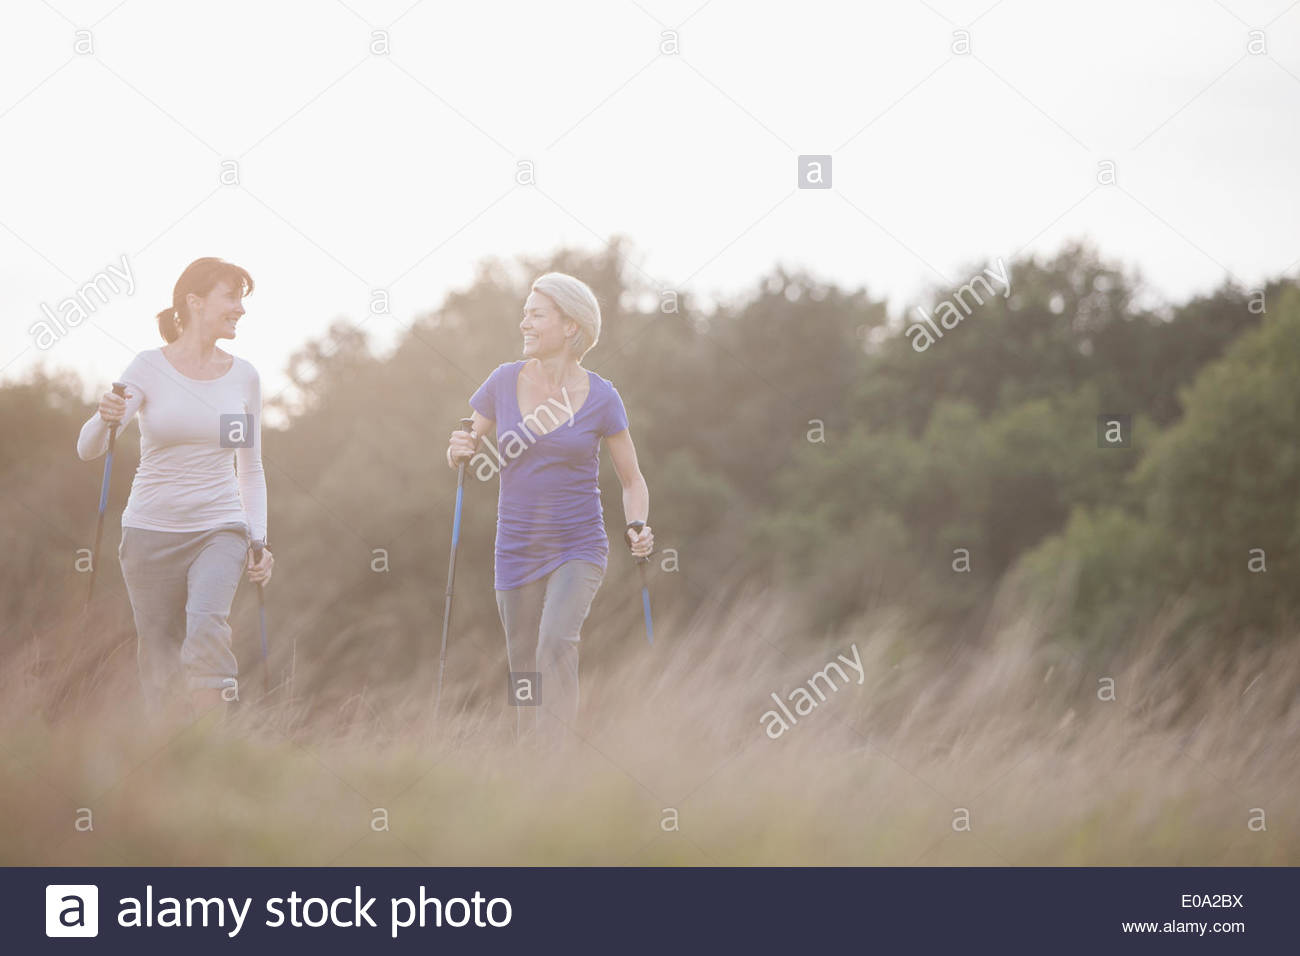 Happy women hiking together outdoors Photo Stock